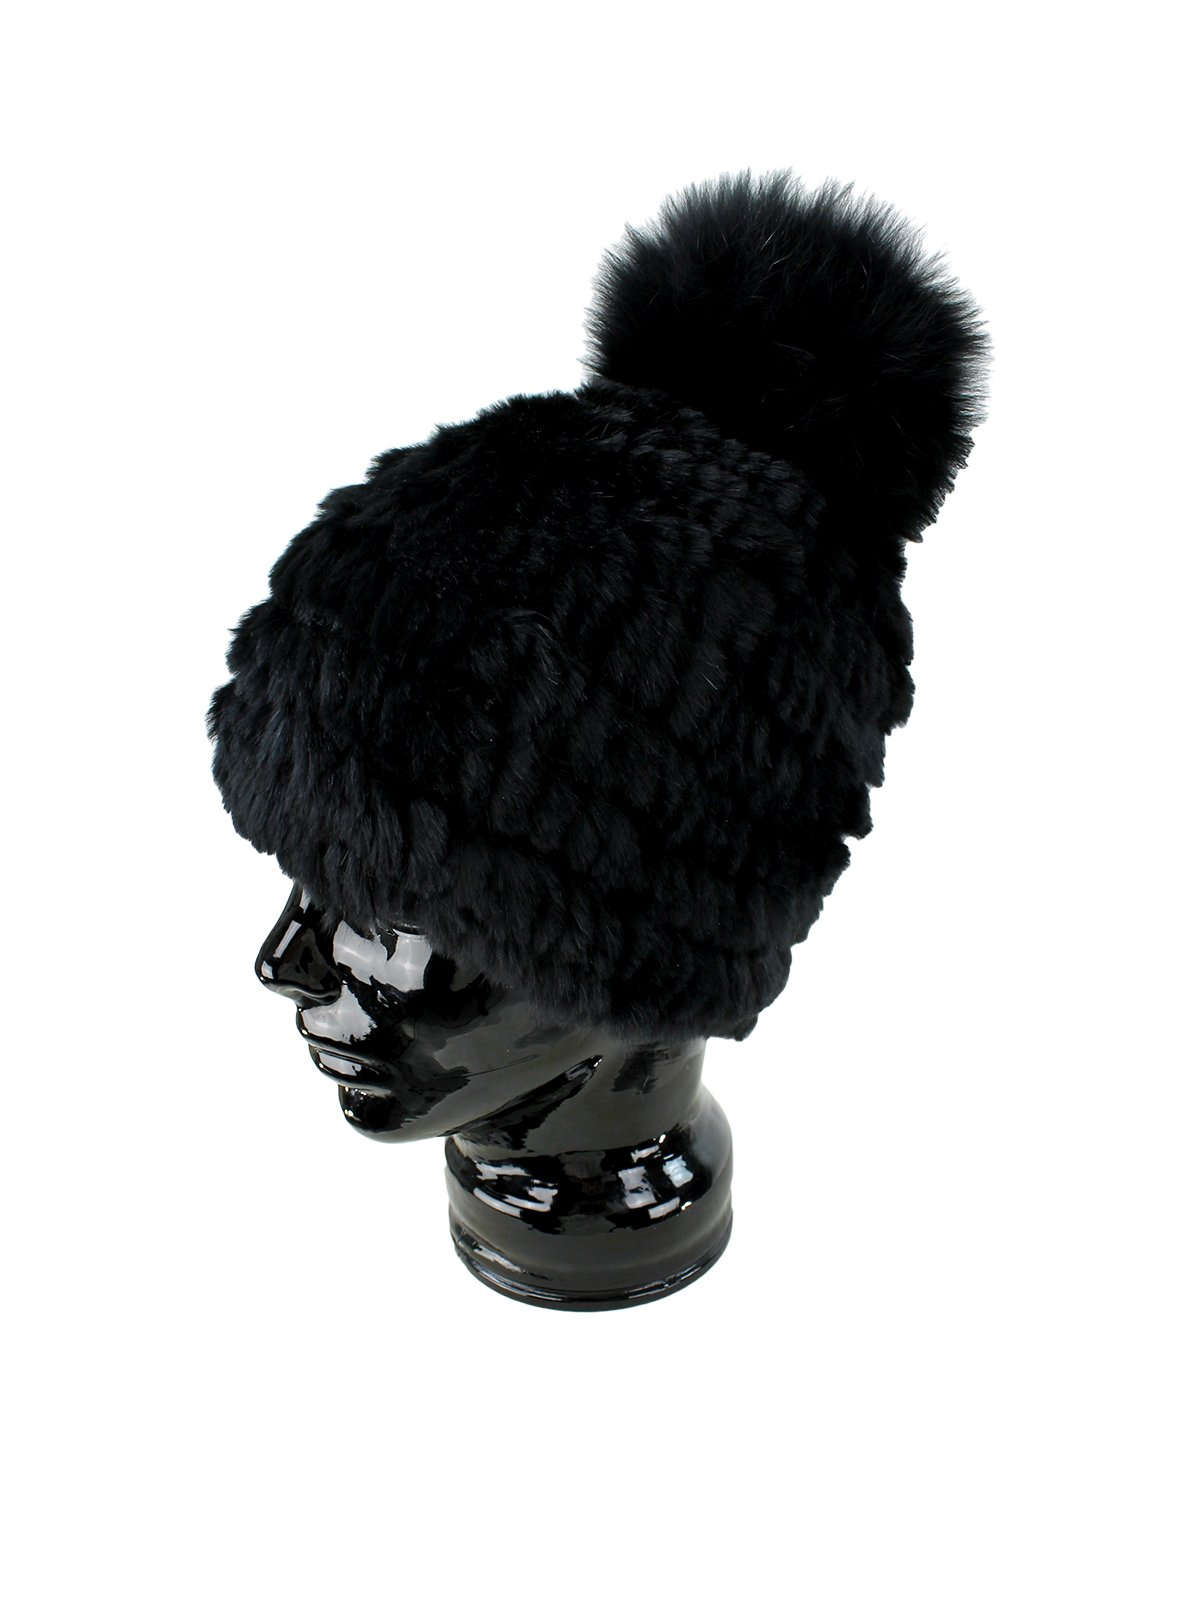 76587265ee0f8 Womans Black Knit Rex Rabbit Fur Hat with Black Fox Fur Pom Pom ...